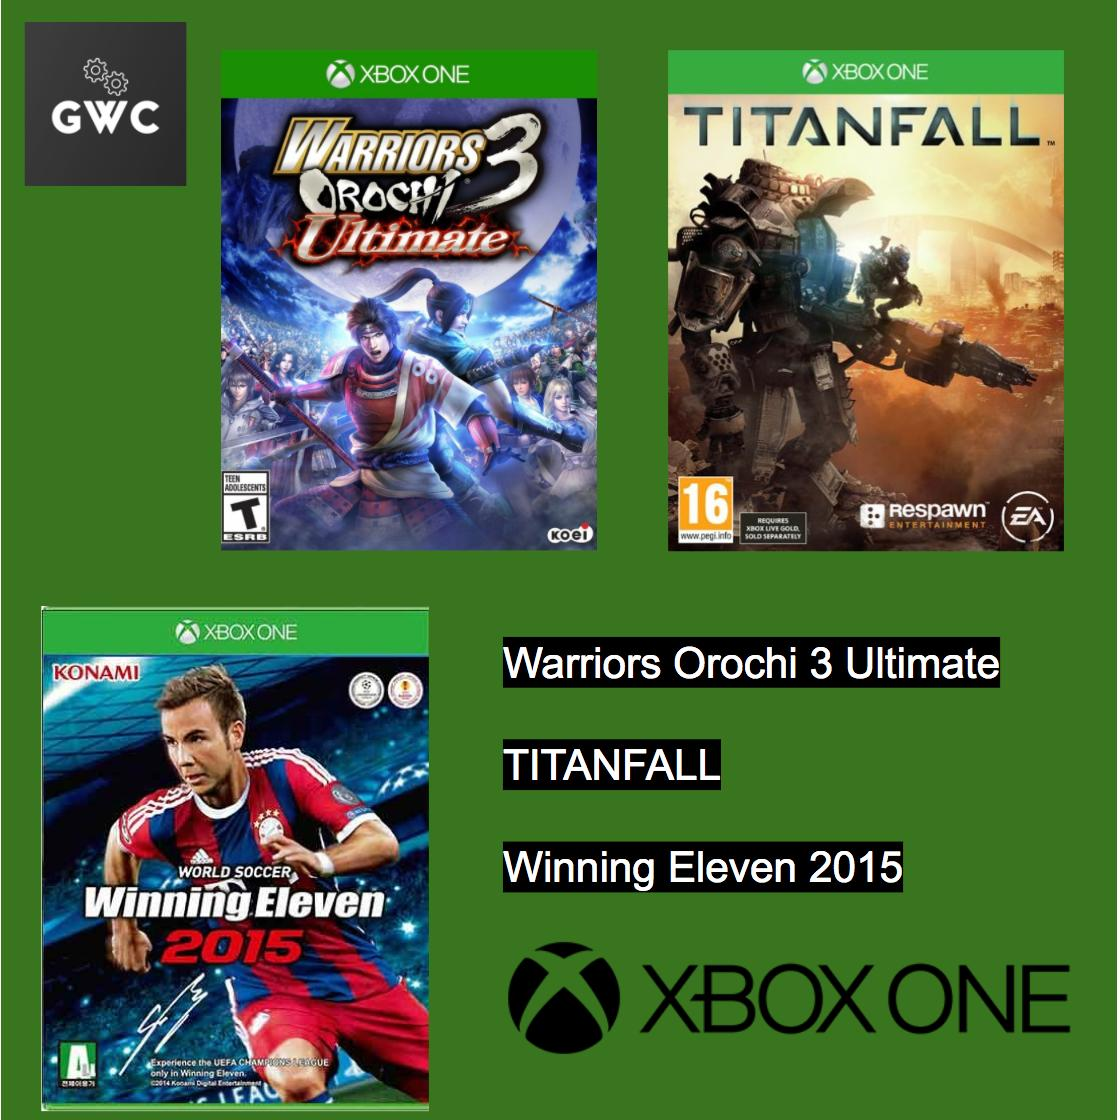 Compare Price Xbox One Games X 3 Warriors Orochi 3 Ultimate Titanfall Winning Eleven 2015 On Singapore